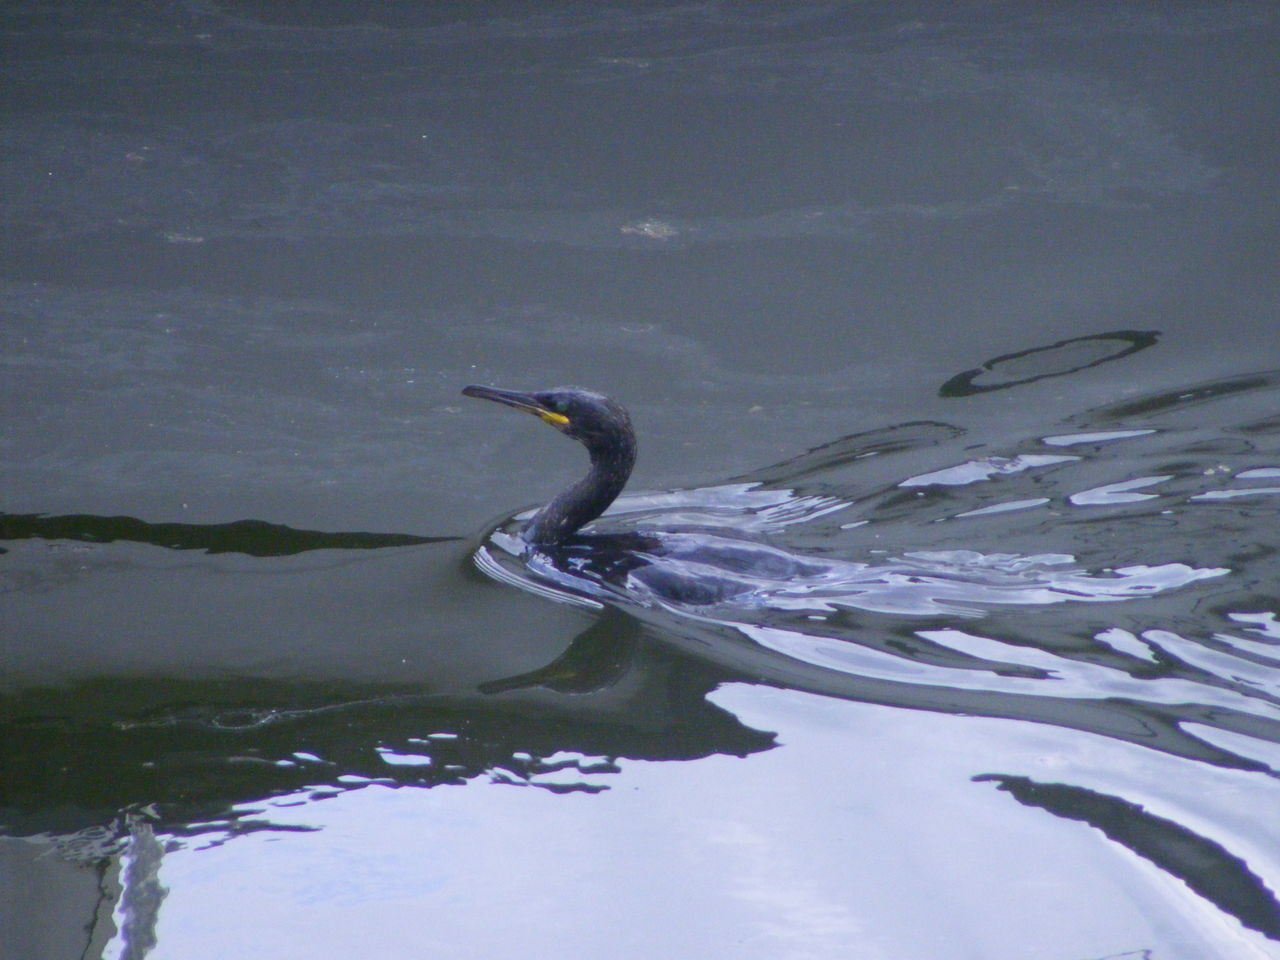 High Angle View Of Cormorant Swimming In Lake